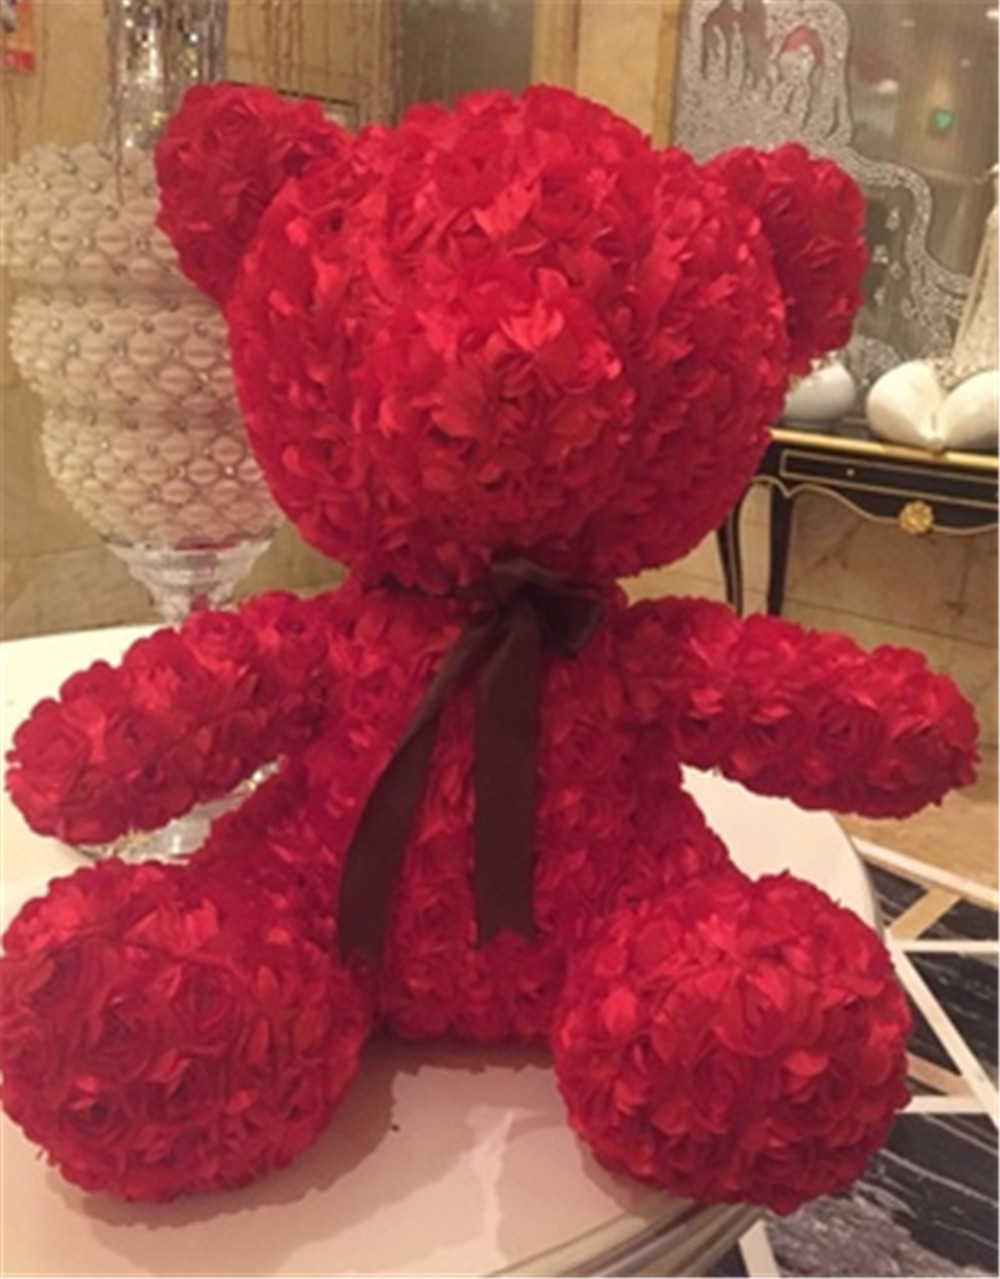 Fancytrader Red Rose Teddy Bear Toy Nice Quality Big Bear Teddy Doll 70cm 28inch for Kids Adults Gifts2